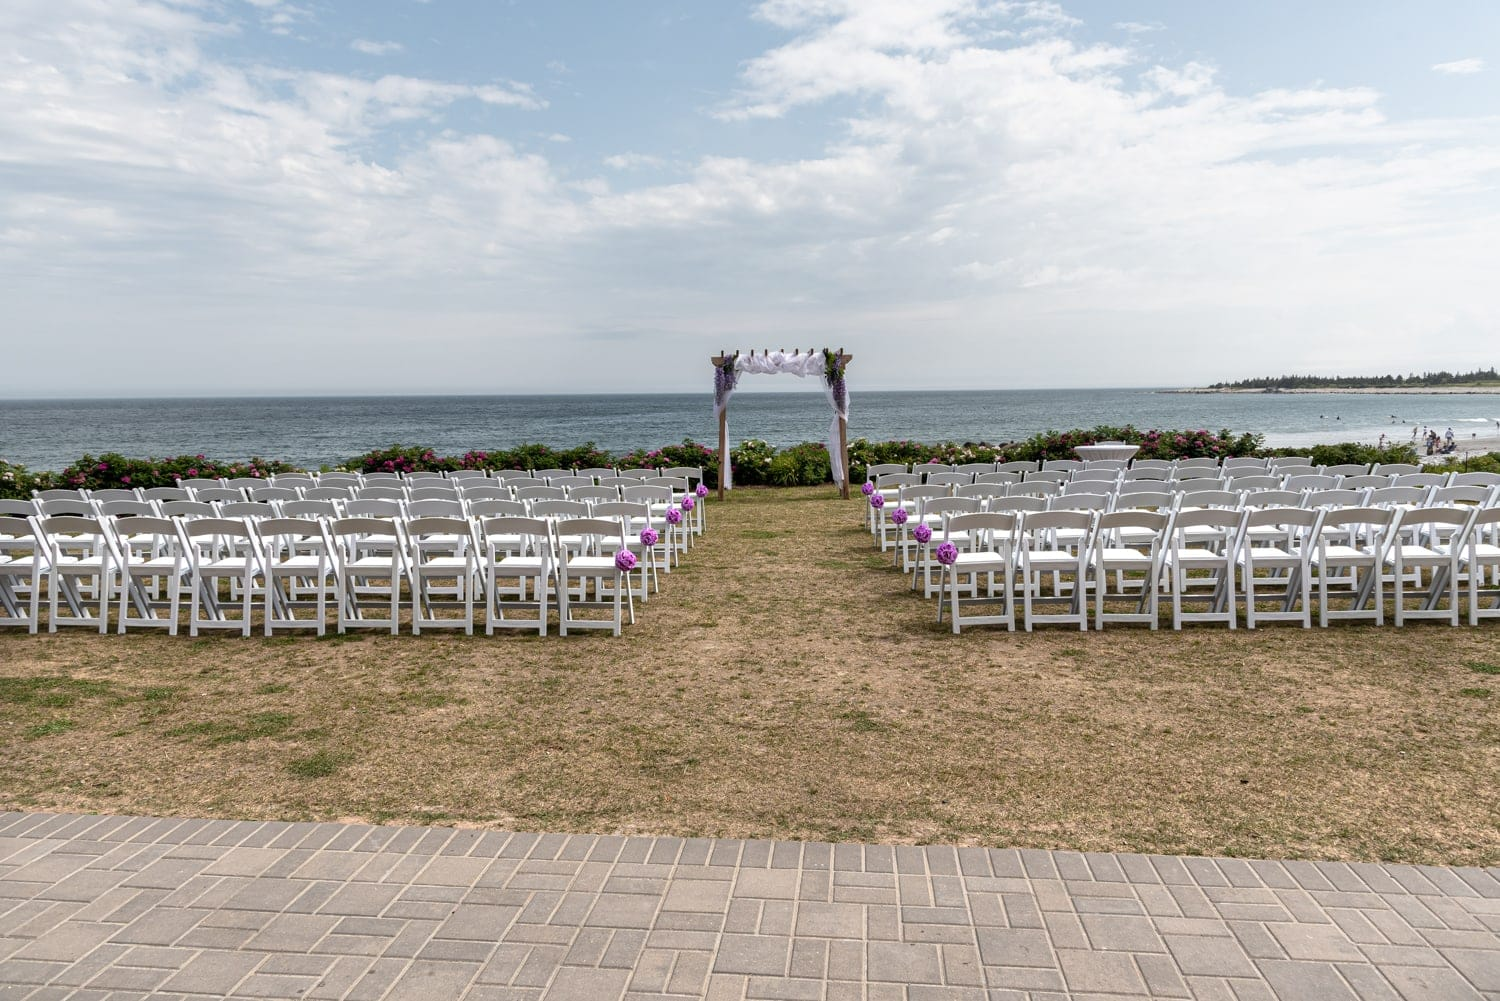 The wedding ceremony set up for a White Point wedding for a nova scotia wedding venue.